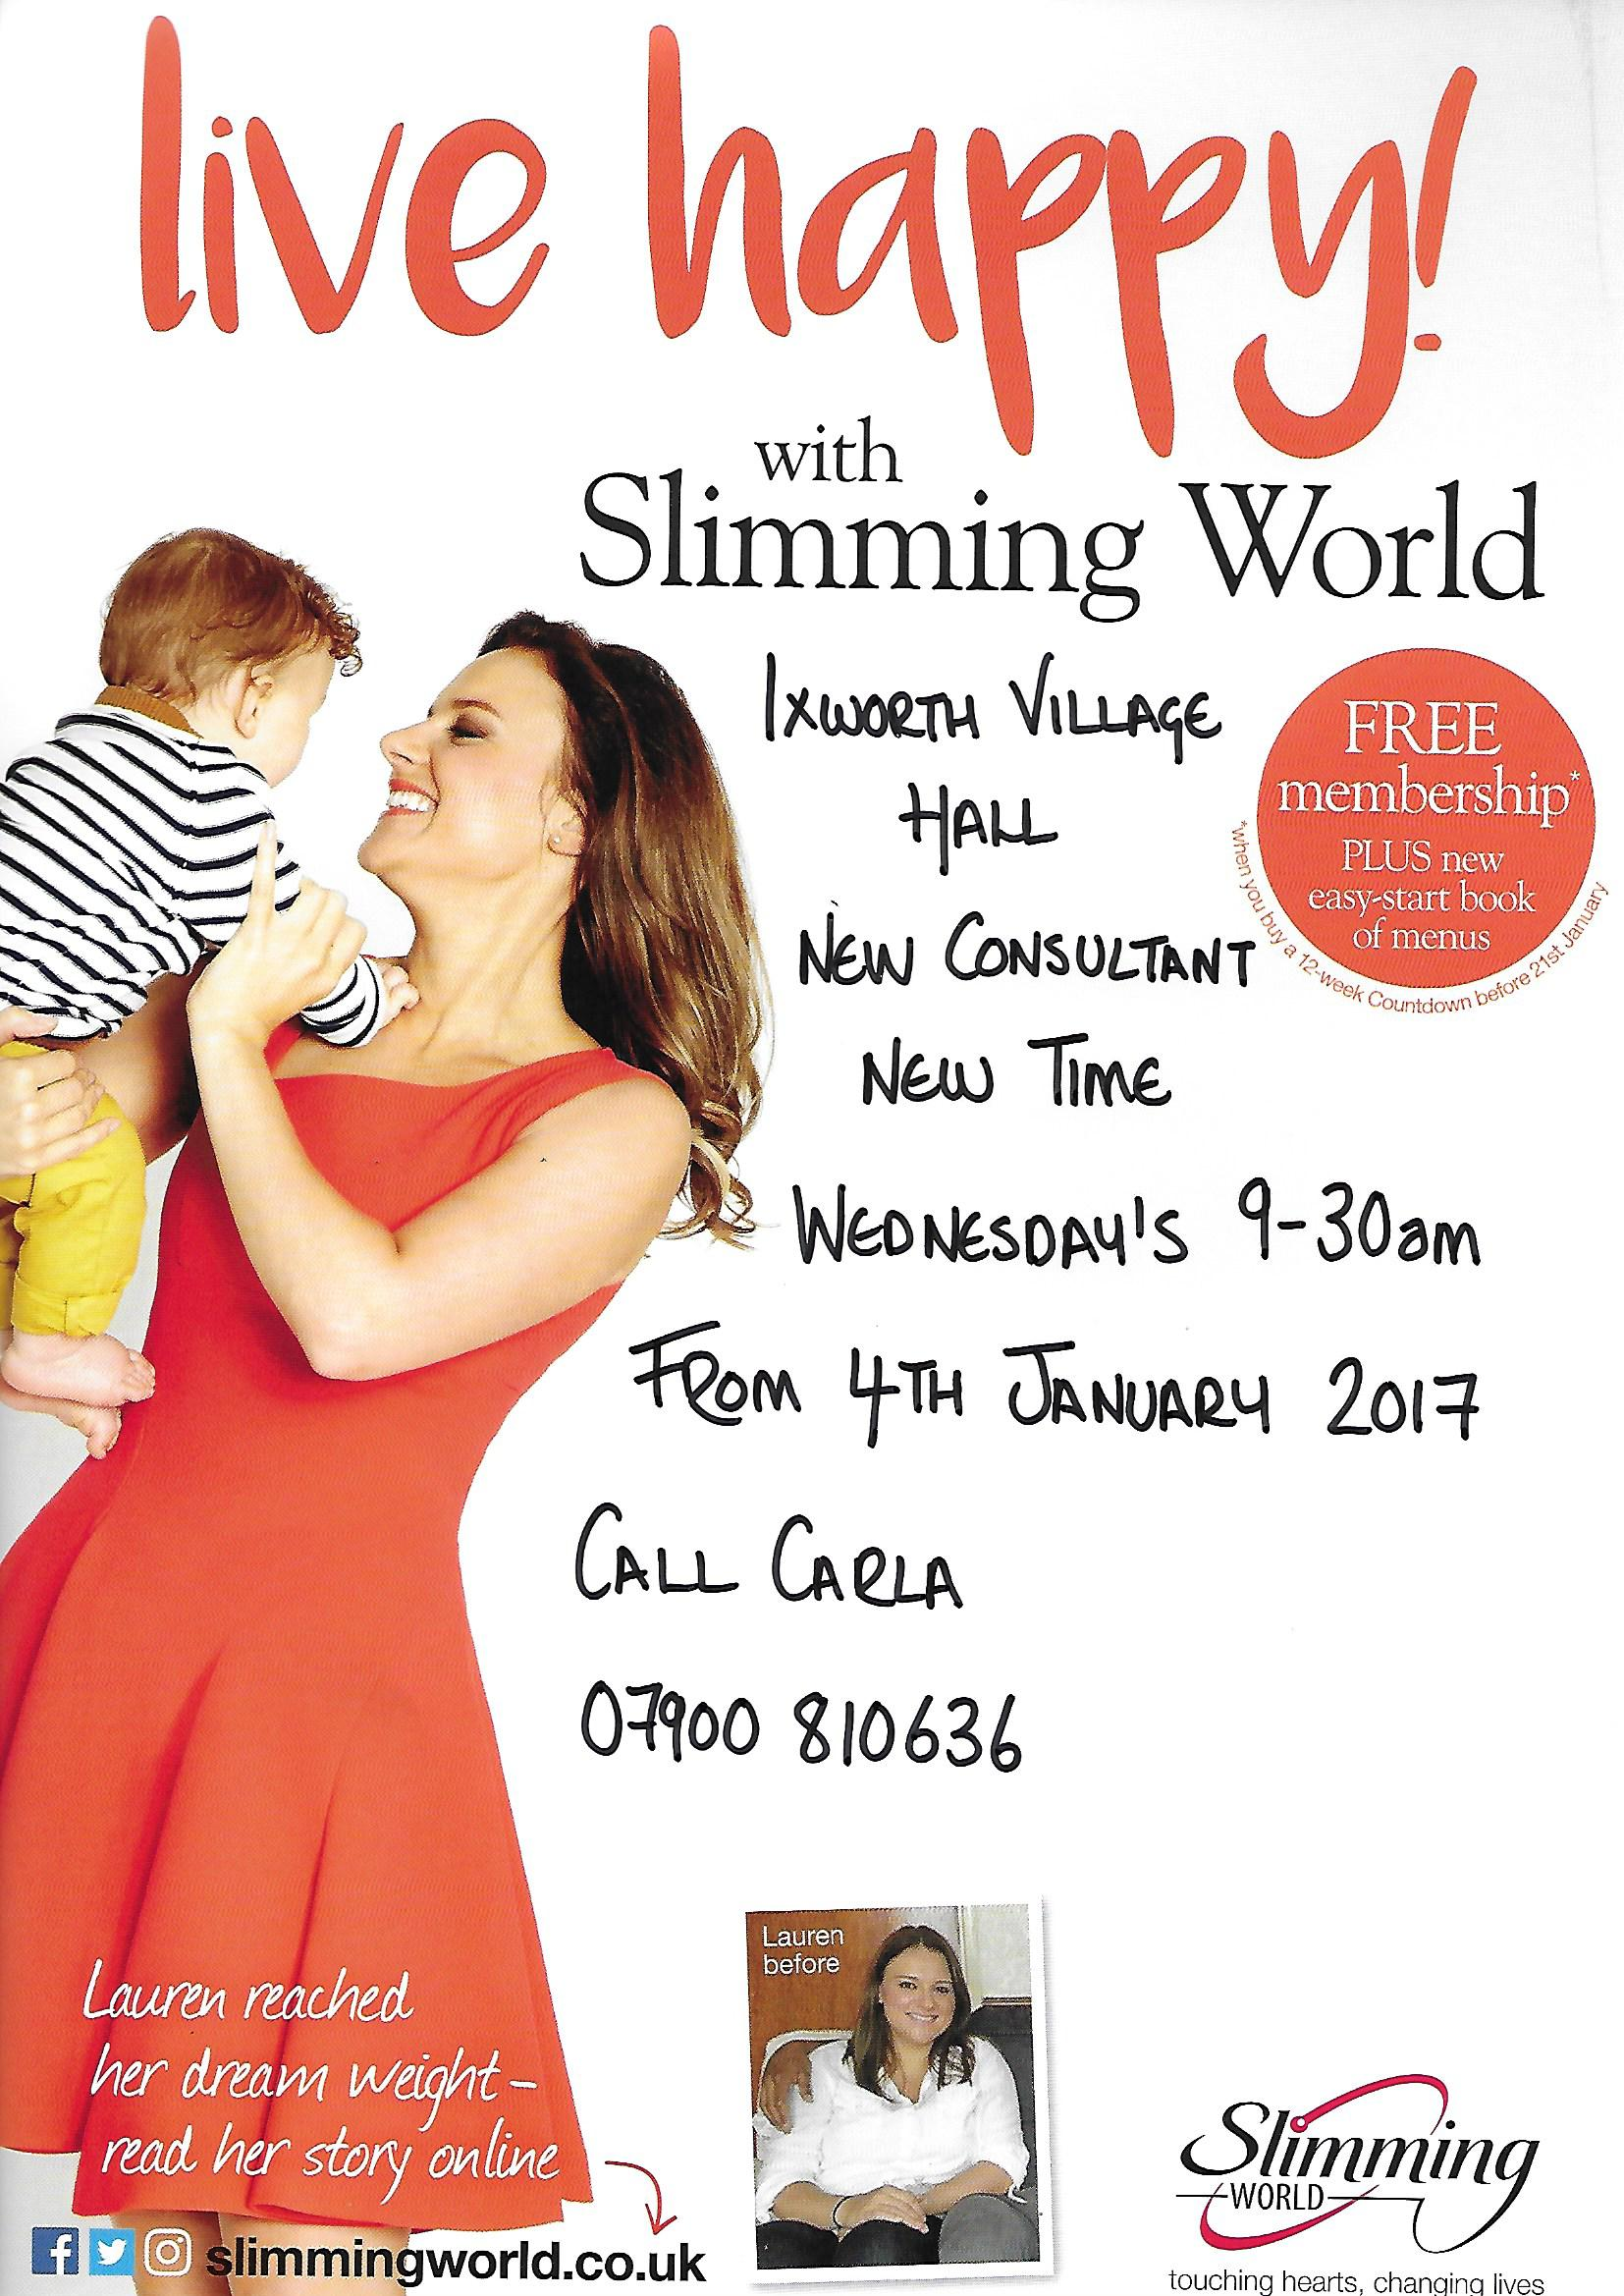 Slimming world ixworth village hall The slimming world